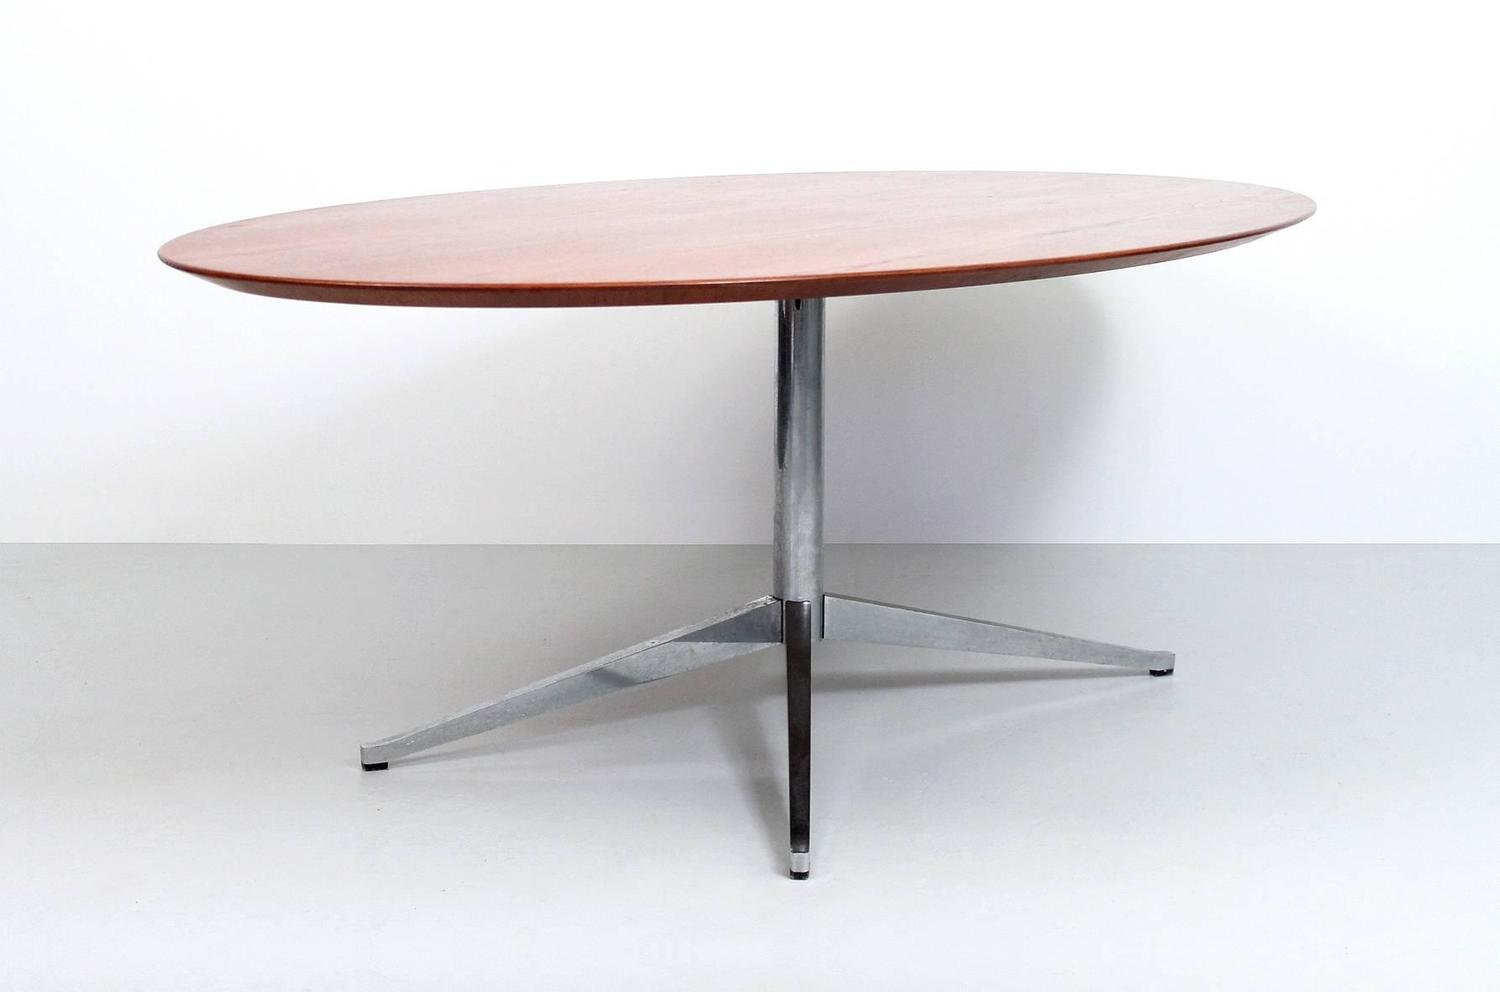 Oval Florence Knoll Teak Dining Table For Sale at 1stdibs : FKTT61z from www.1stdibs.com size 1500 x 992 jpeg 50kB